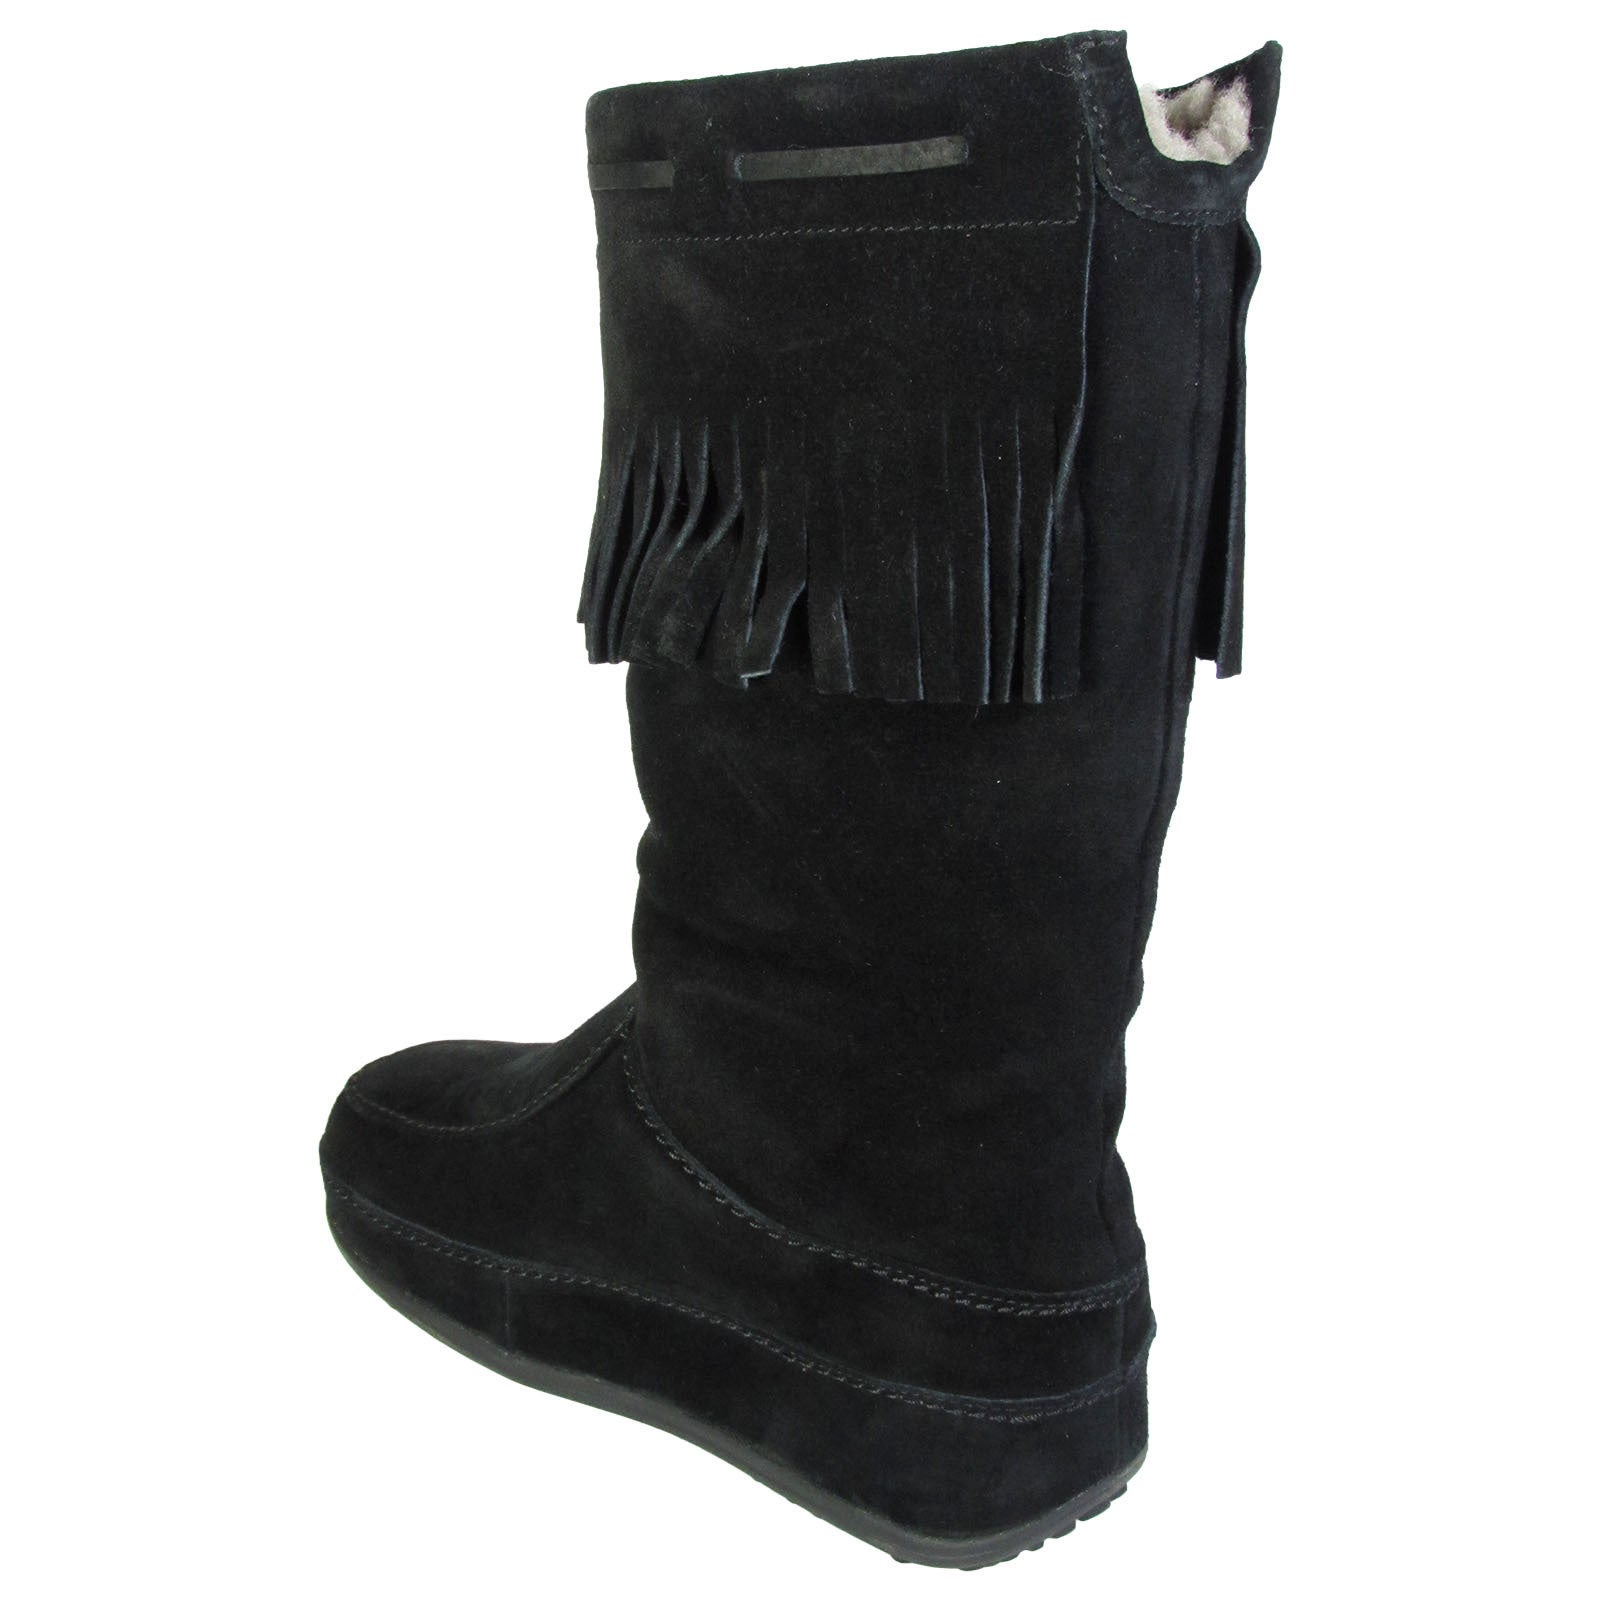 b02cc5ad3 Shop Fitflop Womens Superfringe Mukluk Suede Boots - Free Shipping Today -  Overstock - 11079207